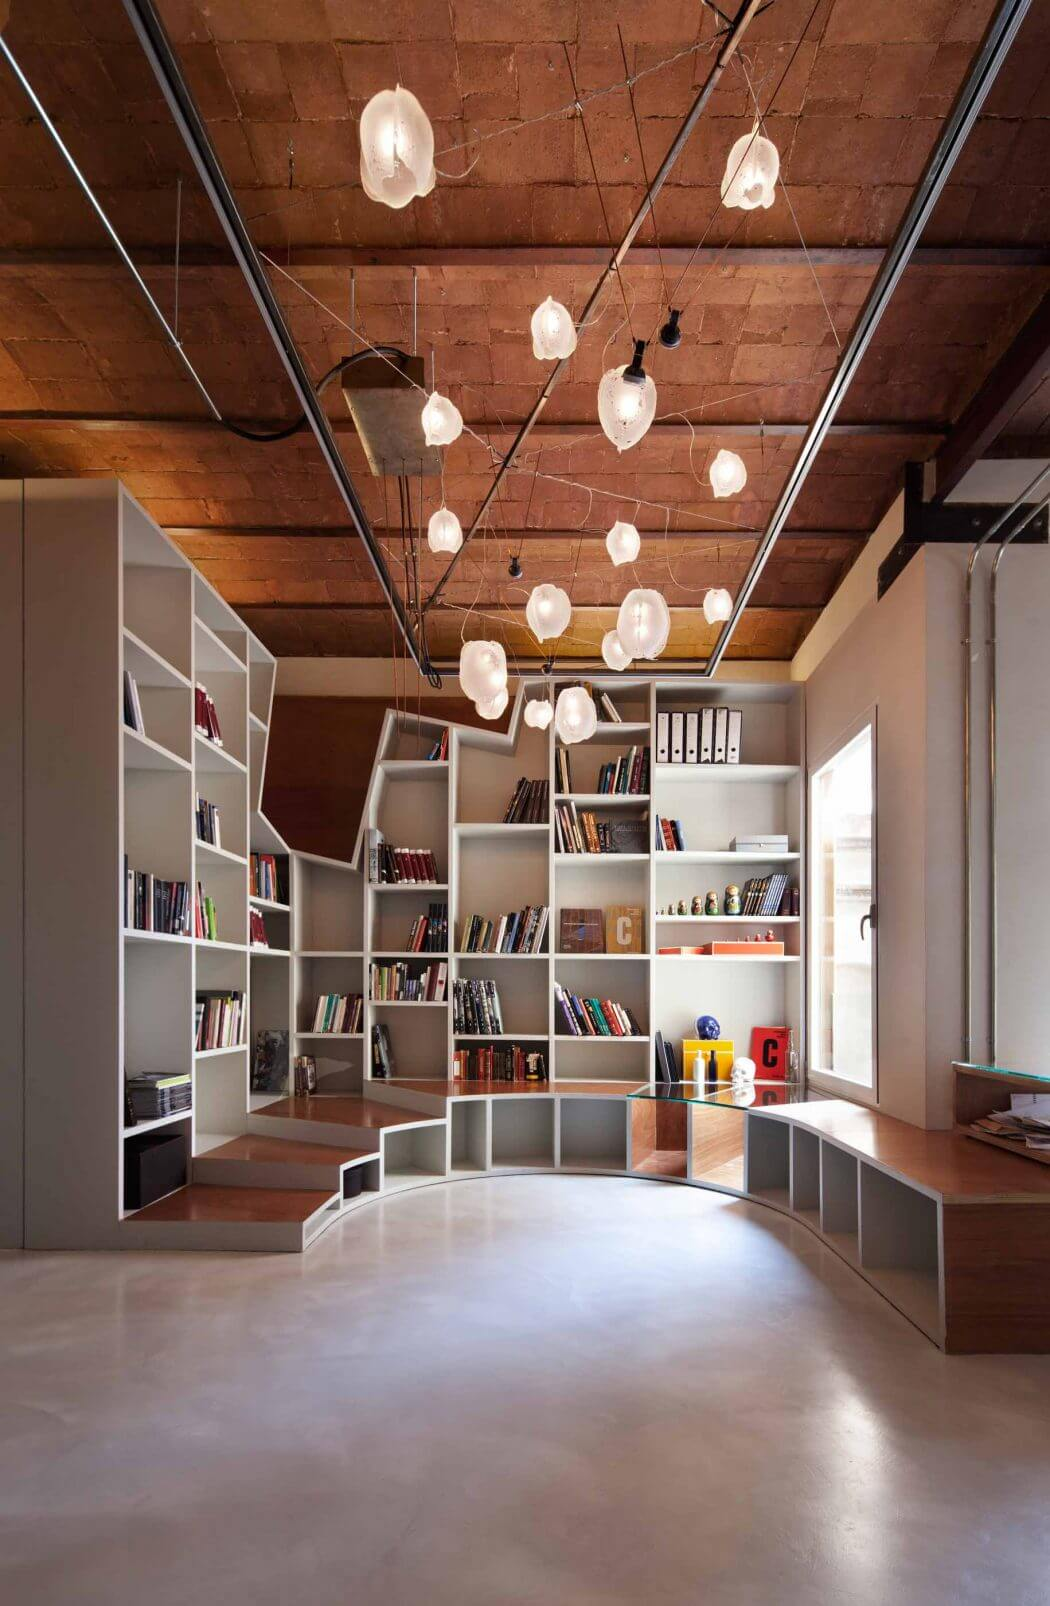 The quirkiness of this space entices you to enter and spend time there.